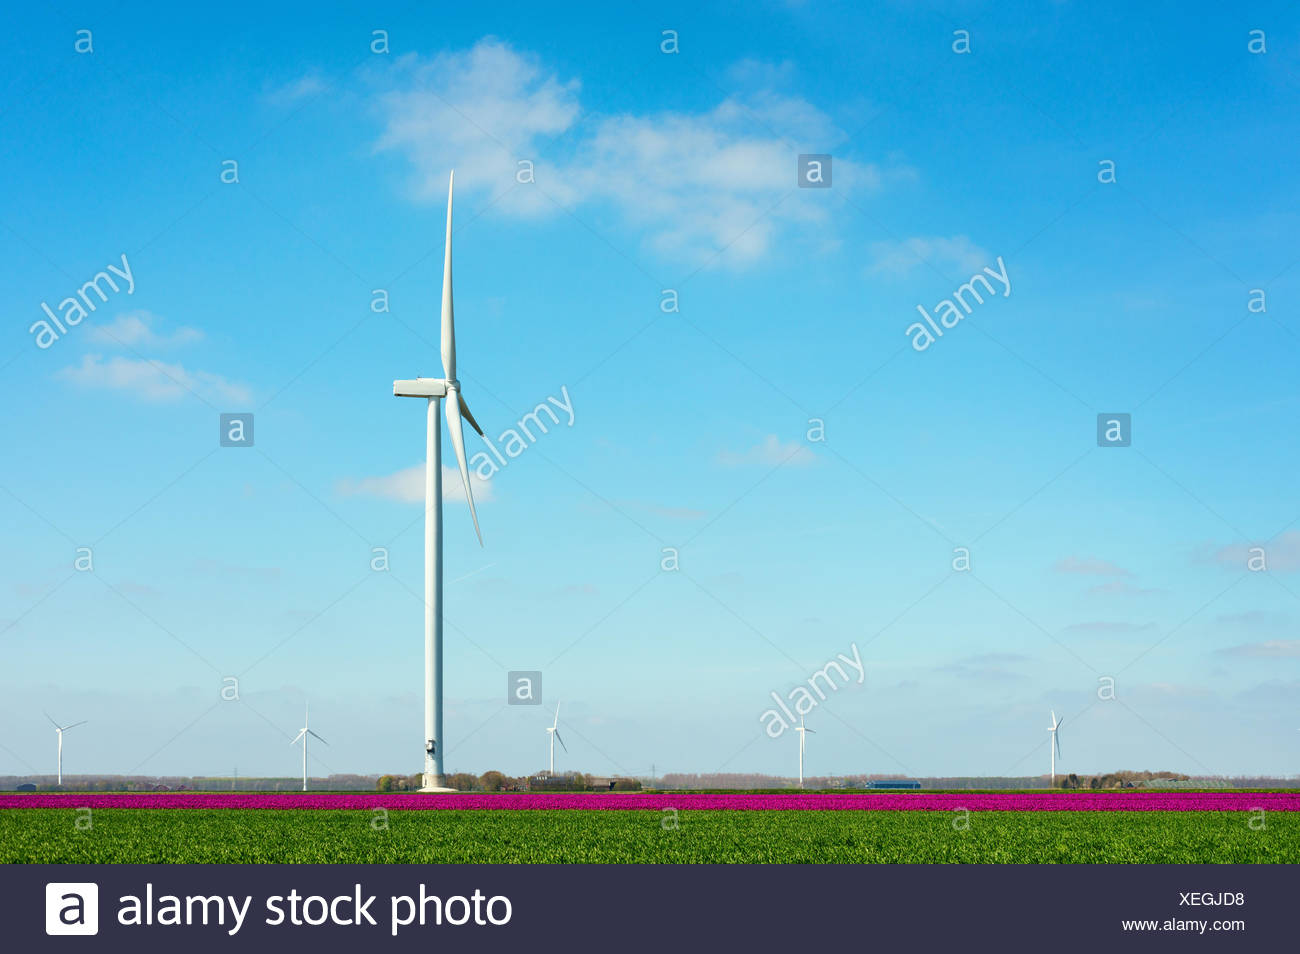 Field with magenta flower blooms and wind turbine, Zeewolde, Flevoland, Netherlands Stock Photo